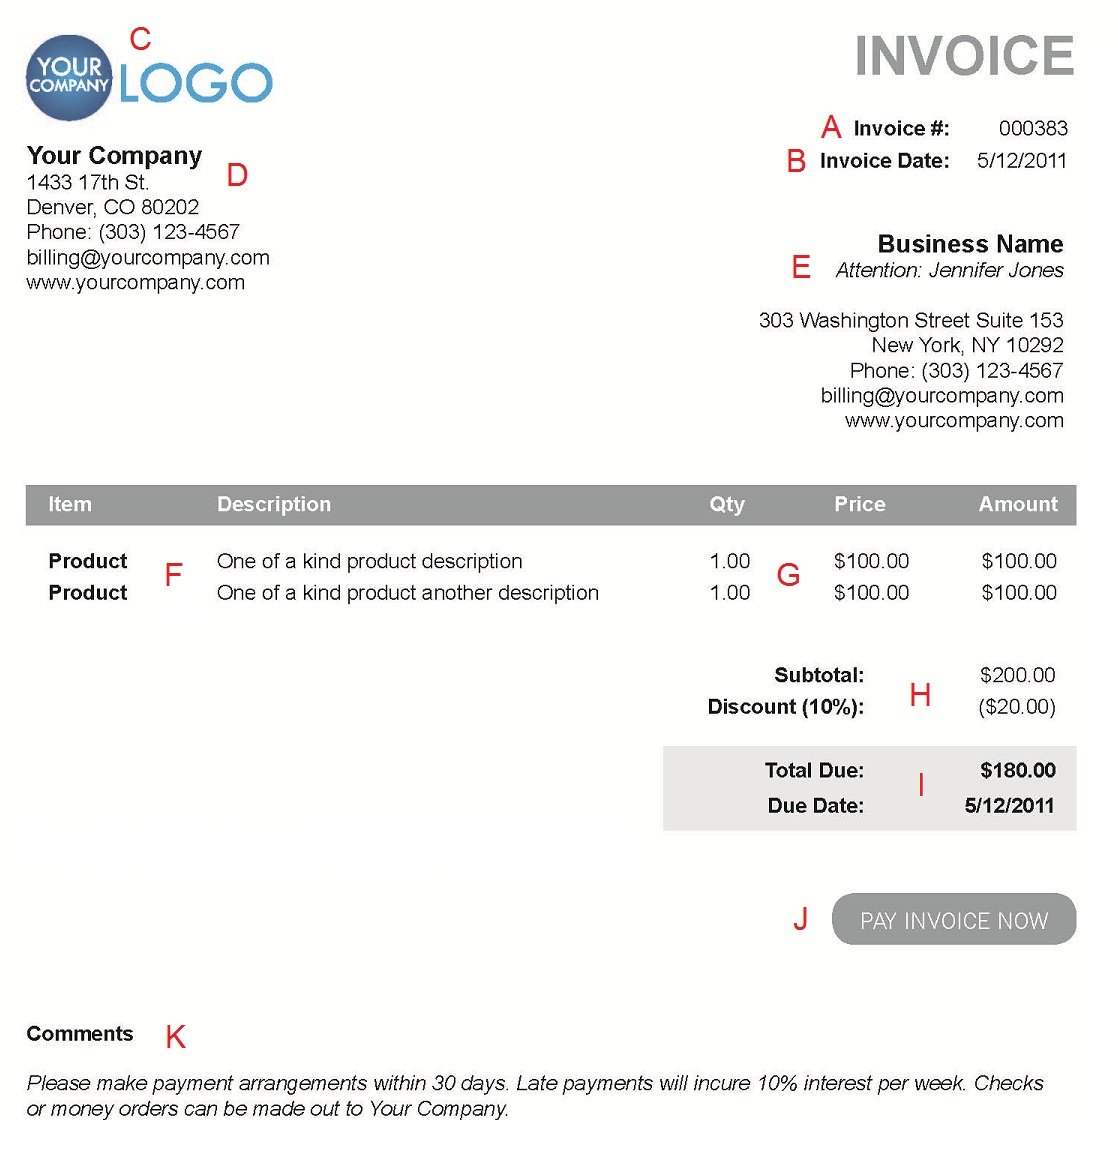 Occupyhistoryus  Ravishing The  Different Sections Of An Electronic Payment Invoice With Inspiring A  With Lovely Invoice Creator Software Also Automotive Invoicing Software In Addition Custom Made Invoices And Free Invoice Downloads As Well As Art Invoice Additionally Free Billing Invoice Template Microsoft Word From Paysimplecom With Occupyhistoryus  Inspiring The  Different Sections Of An Electronic Payment Invoice With Lovely A  And Ravishing Invoice Creator Software Also Automotive Invoicing Software In Addition Custom Made Invoices From Paysimplecom